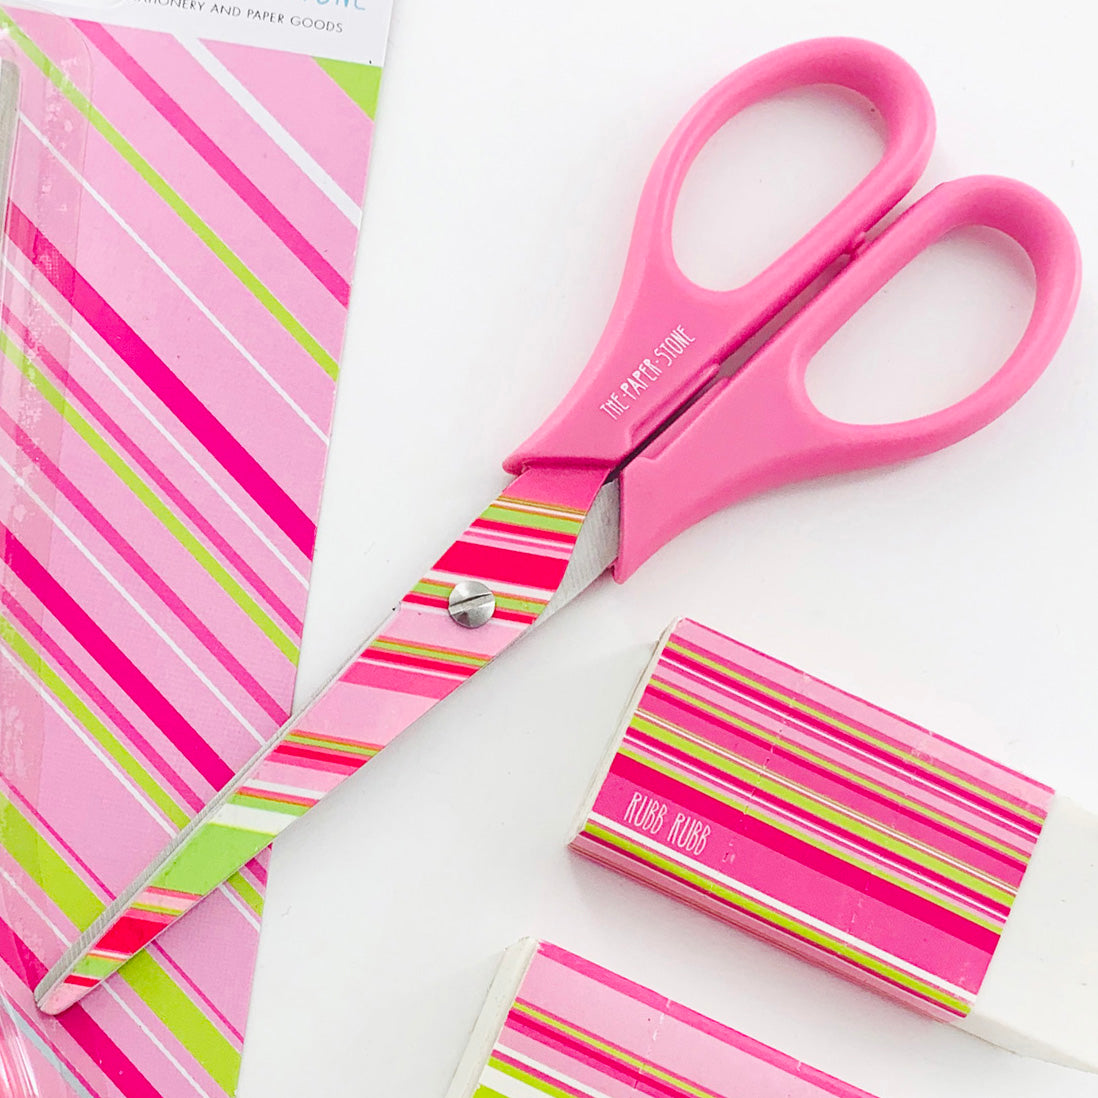 Scissors - Pink Stripes - Pink